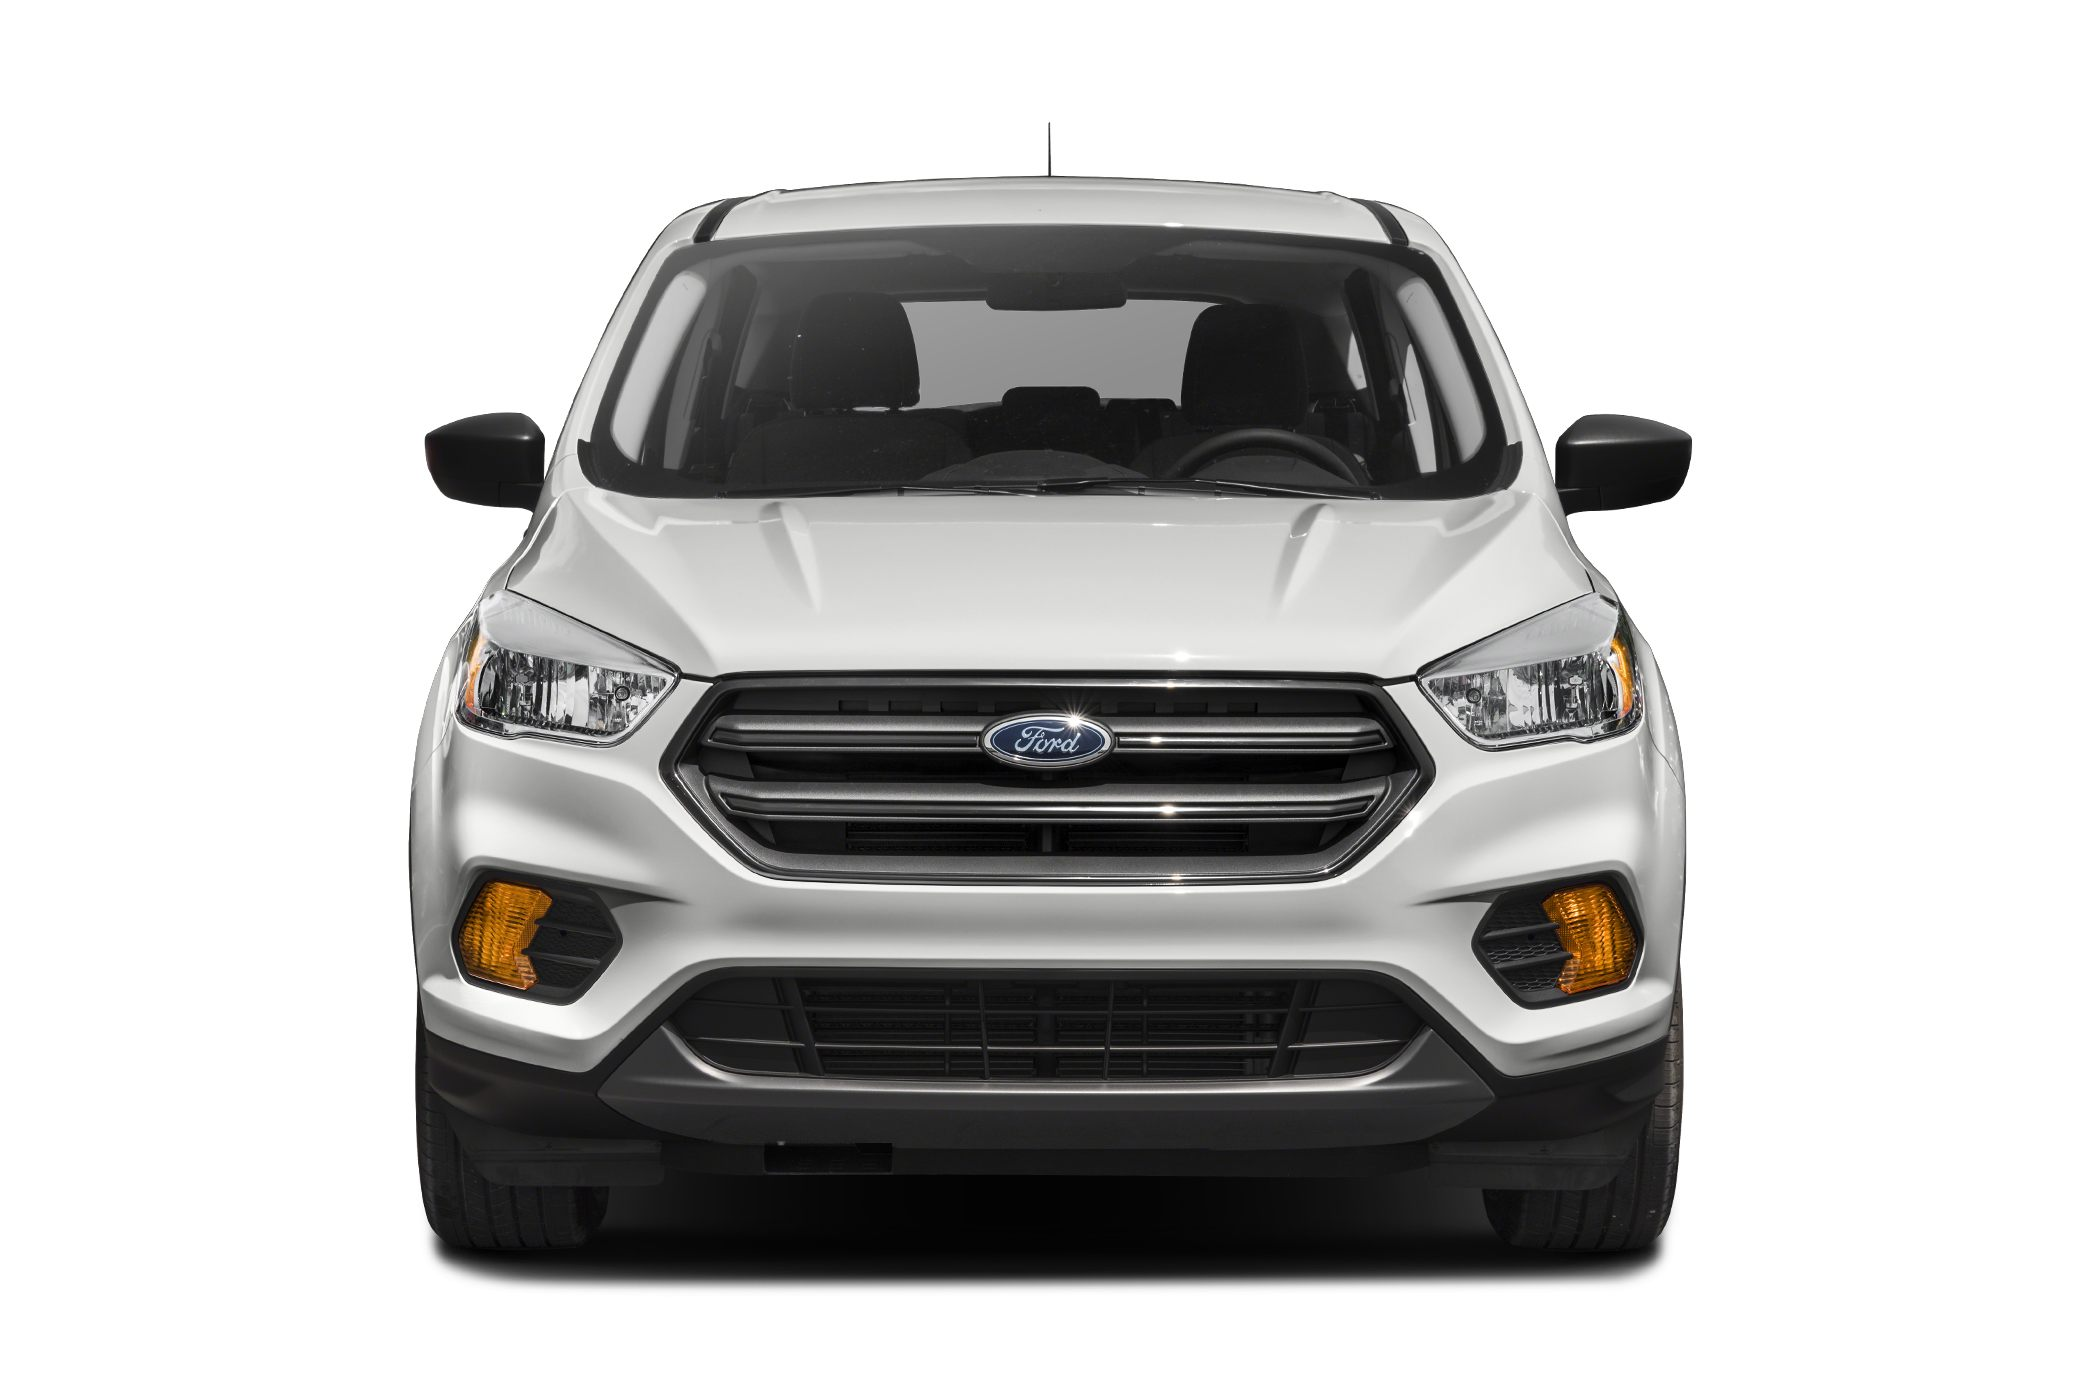 Ford Escape Lease >> New 2019 Ford Escape For Sale Lease Levittown Ny Vin 1fmcu9hd1kub18367